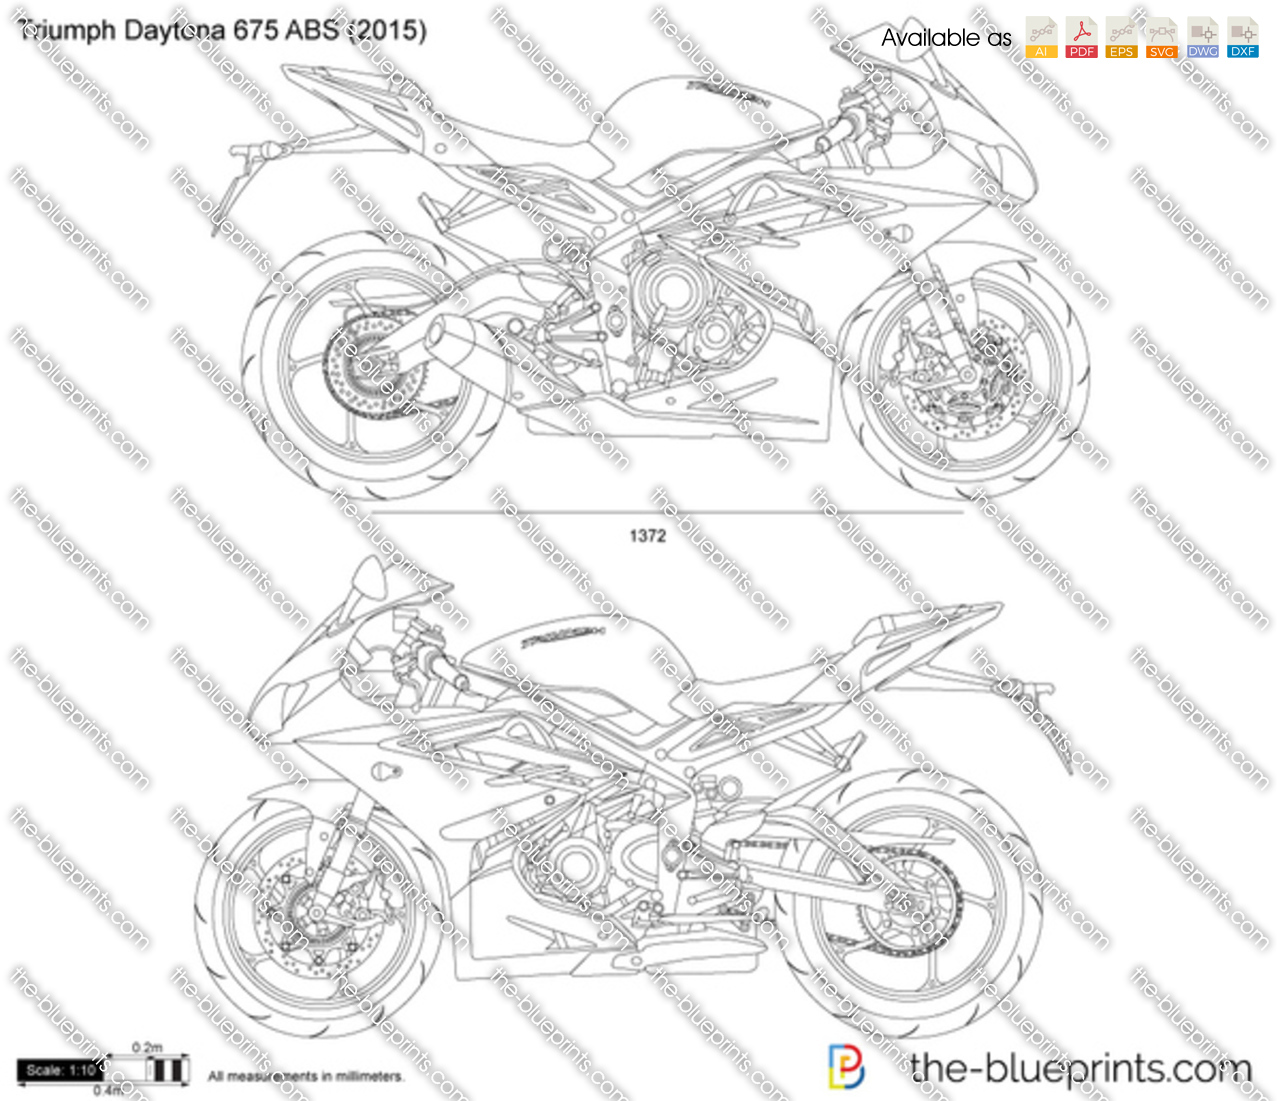 triumph daytona 675 abs vector drawing. Black Bedroom Furniture Sets. Home Design Ideas